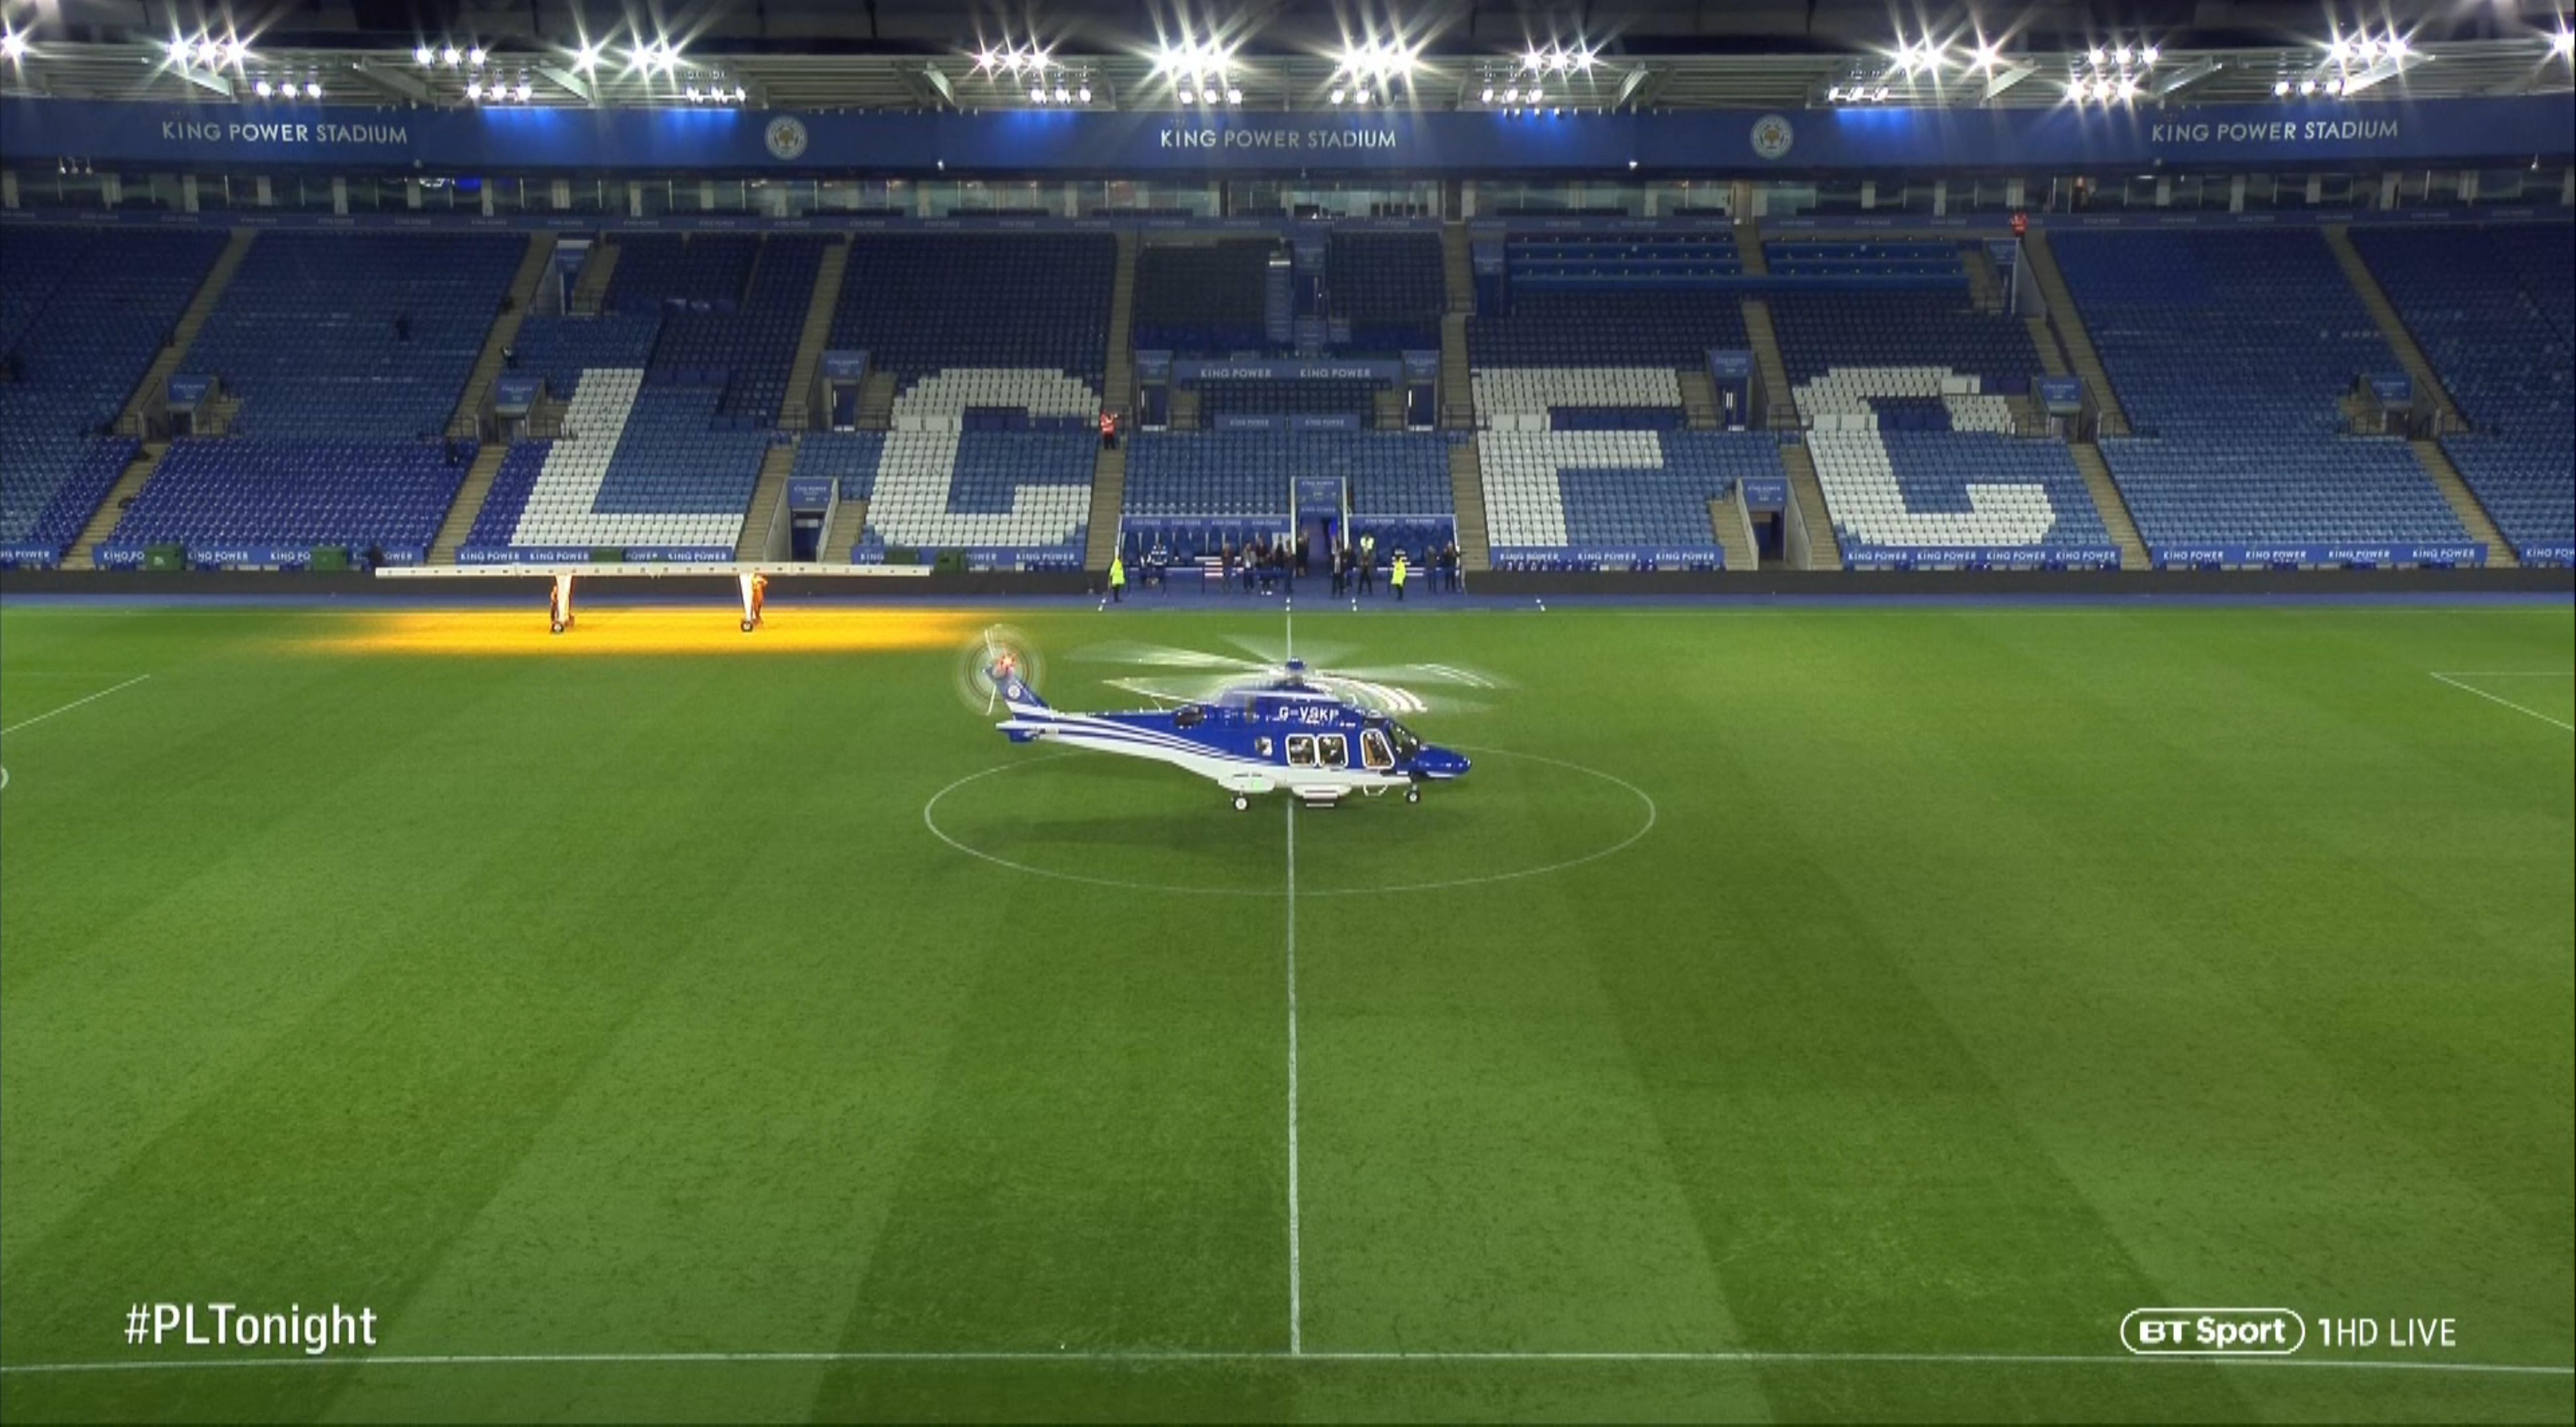 The helicopter was shown on BT Sport coverage minutes before the crash